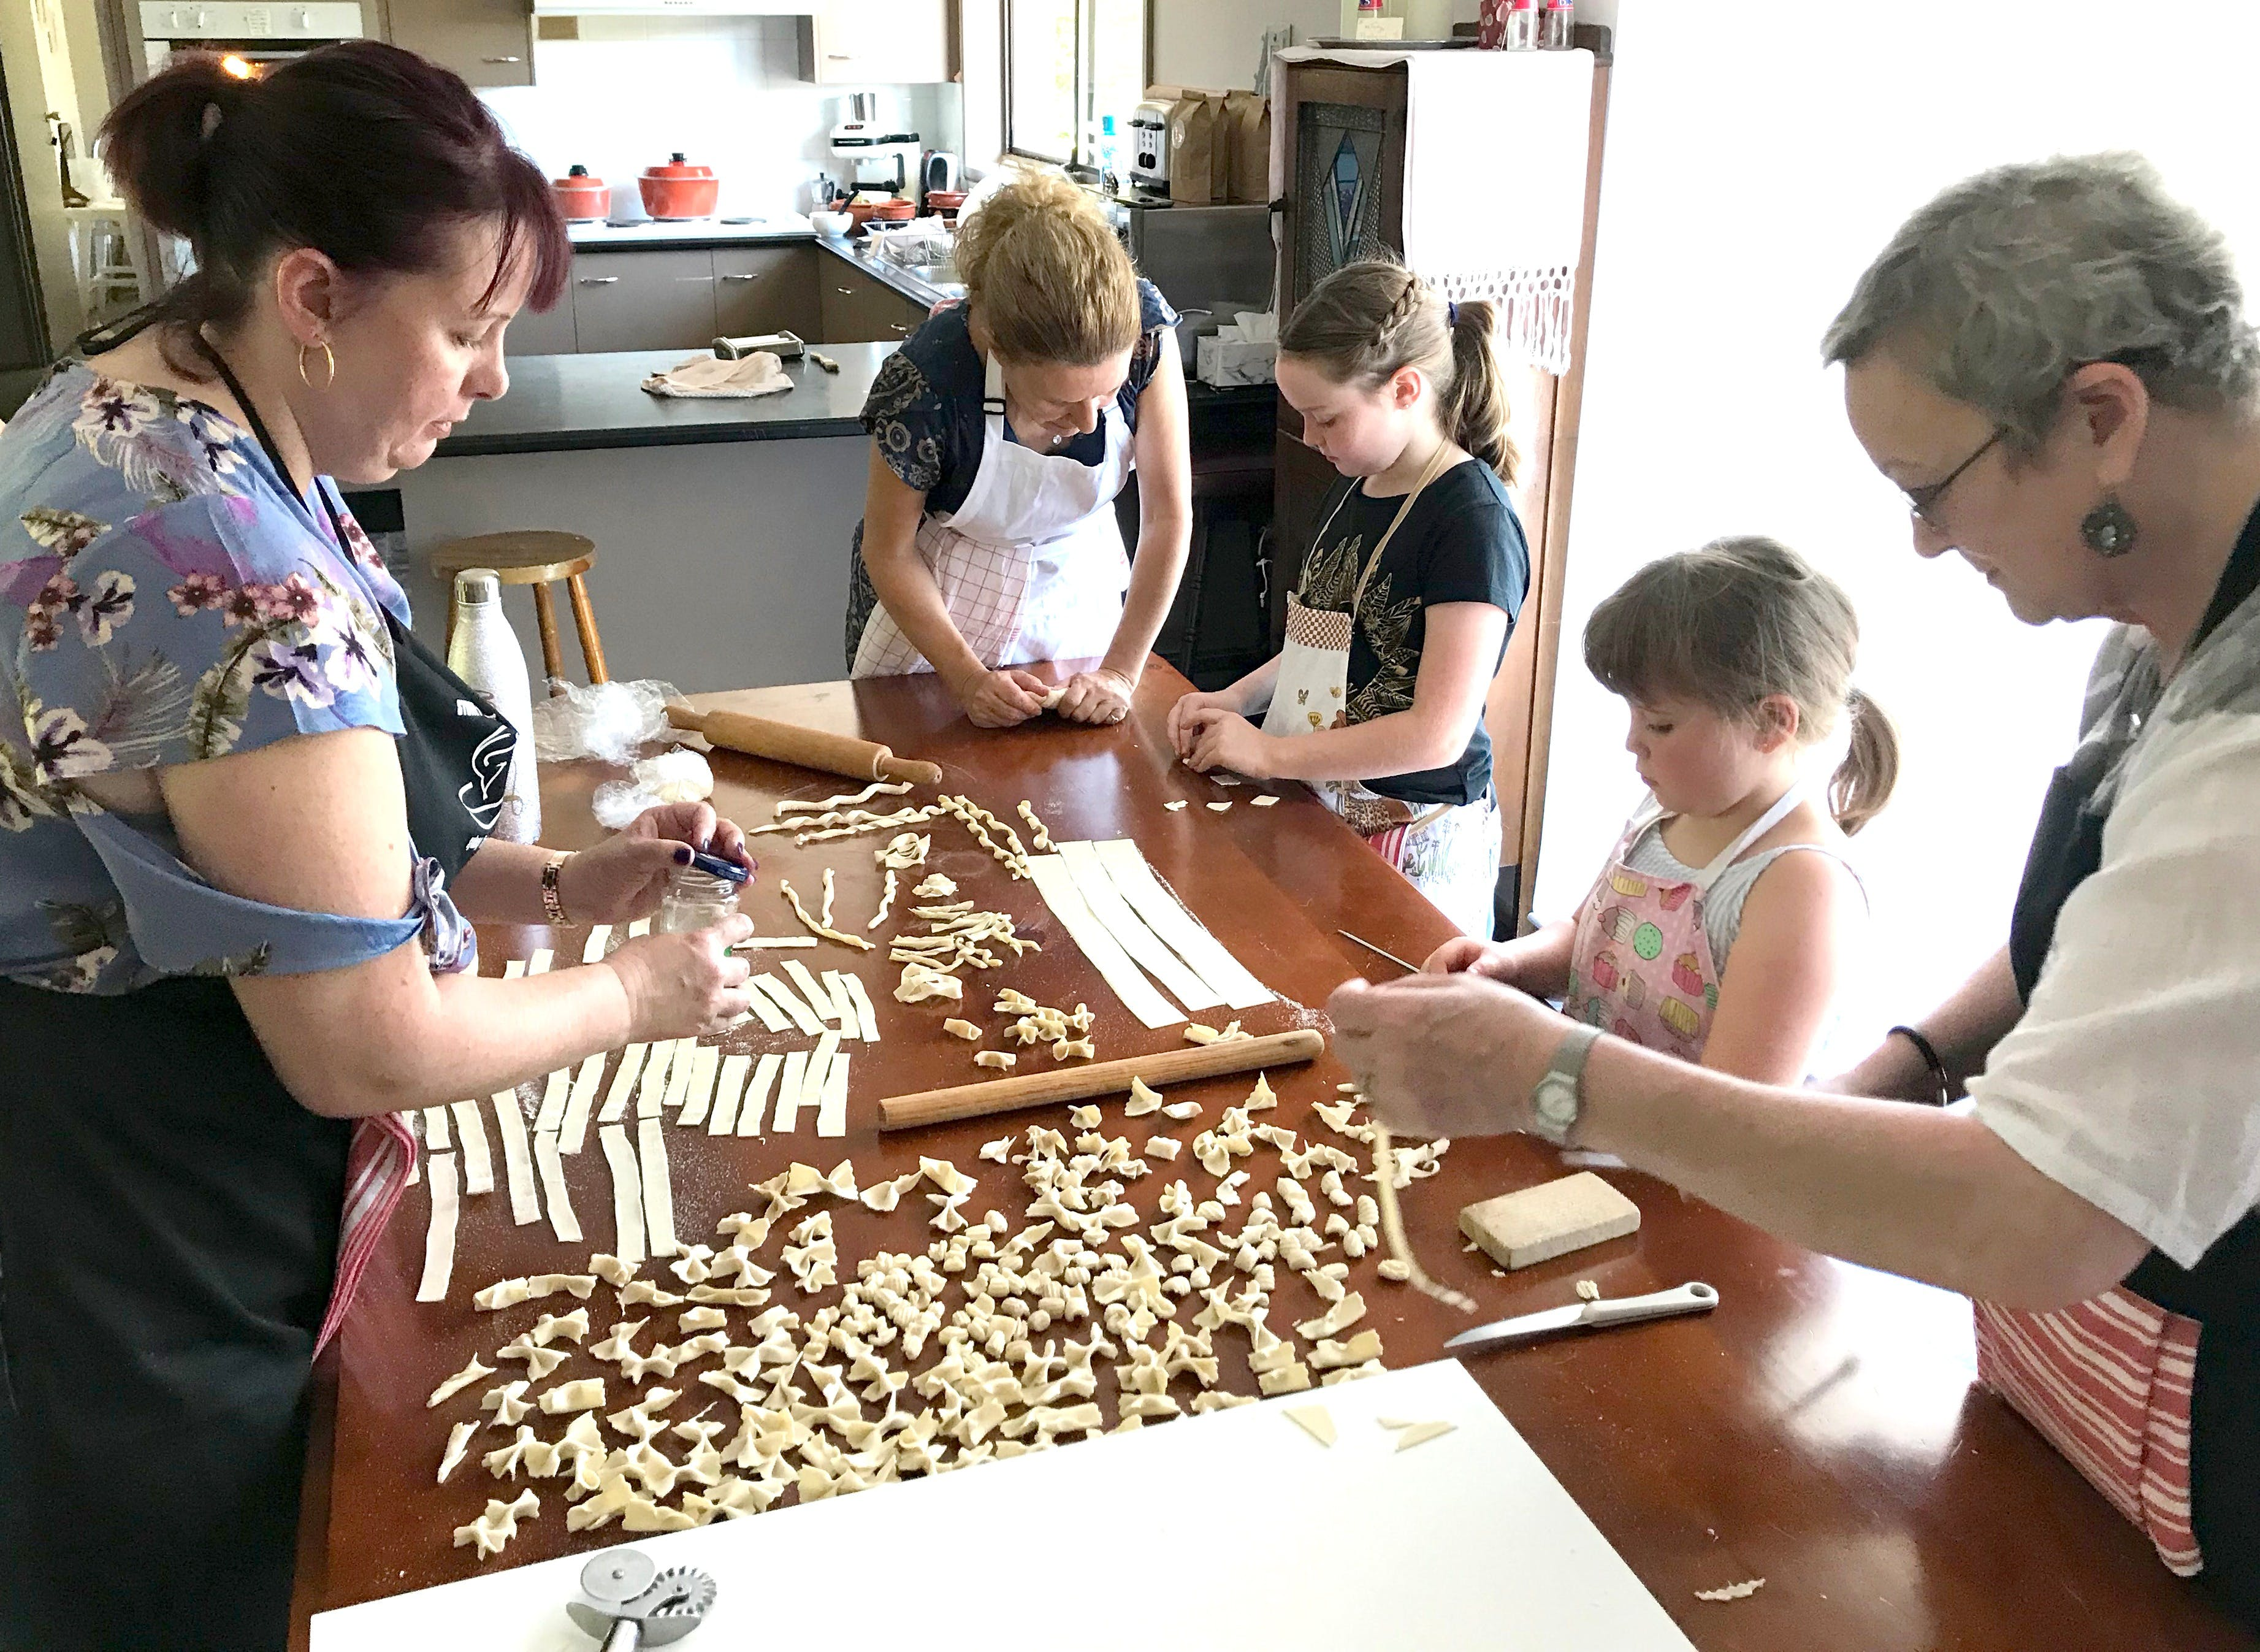 Kids Pasta Making Class - hands on fun at your house - Pubs and Clubs